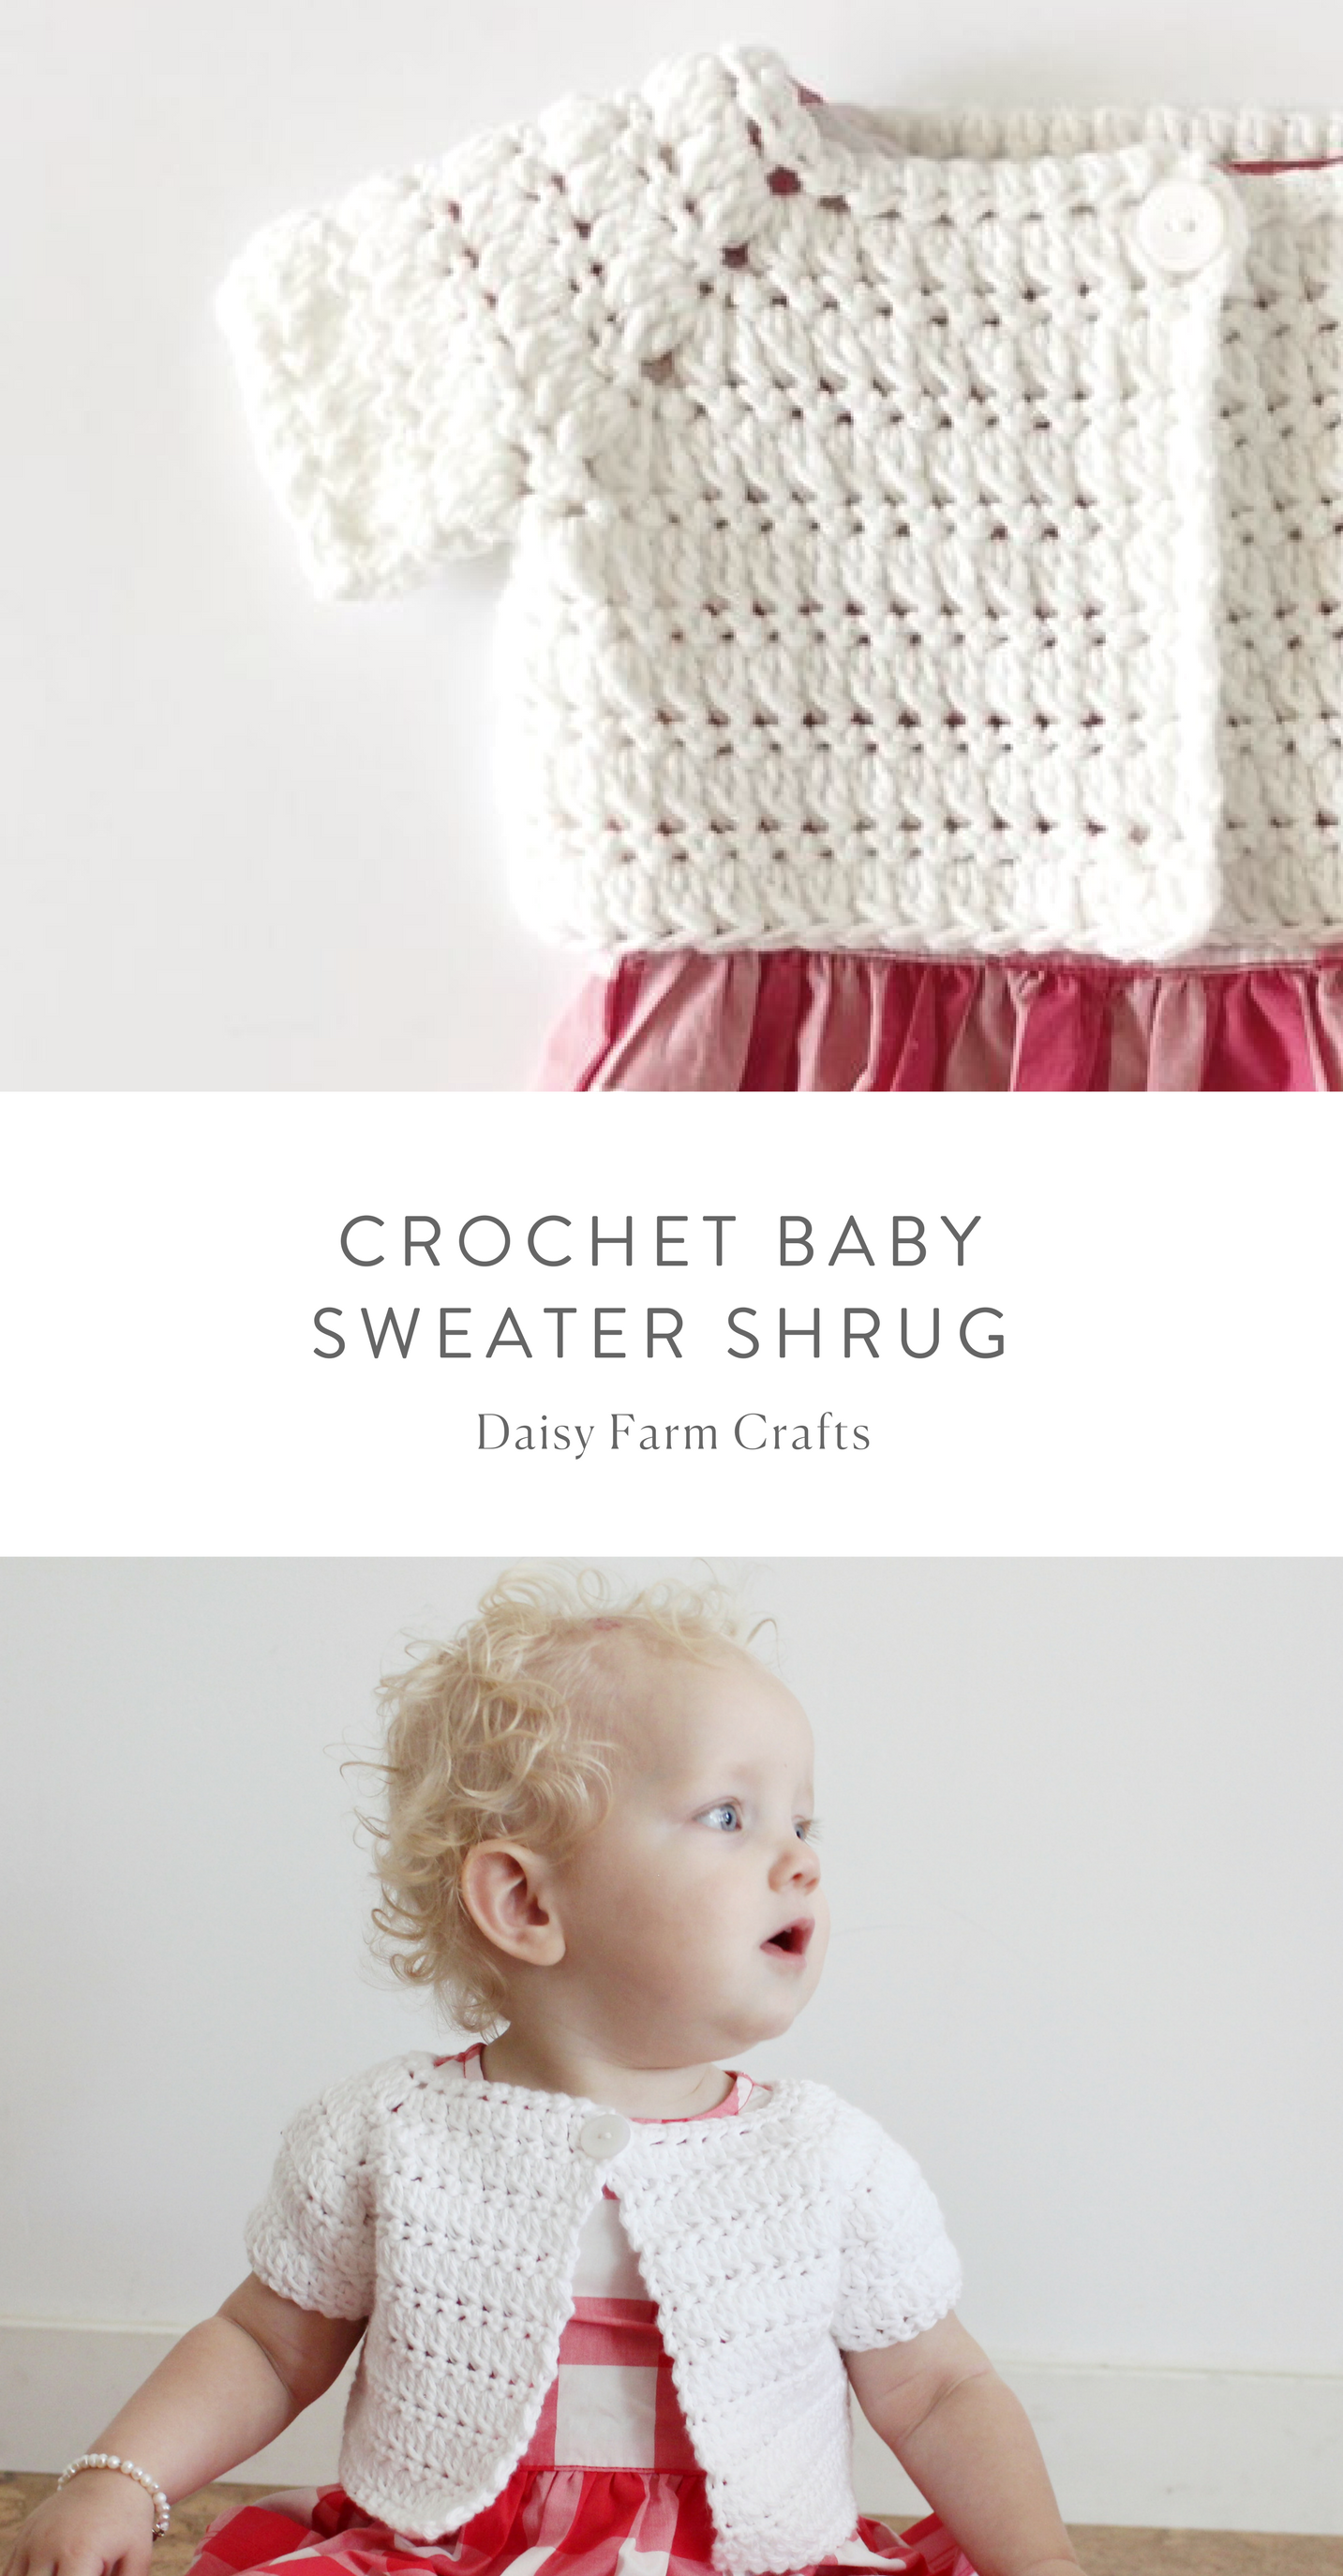 Free Pattern - Crochet Baby Sweater Shrug | Baby pattern | Pinterest ...